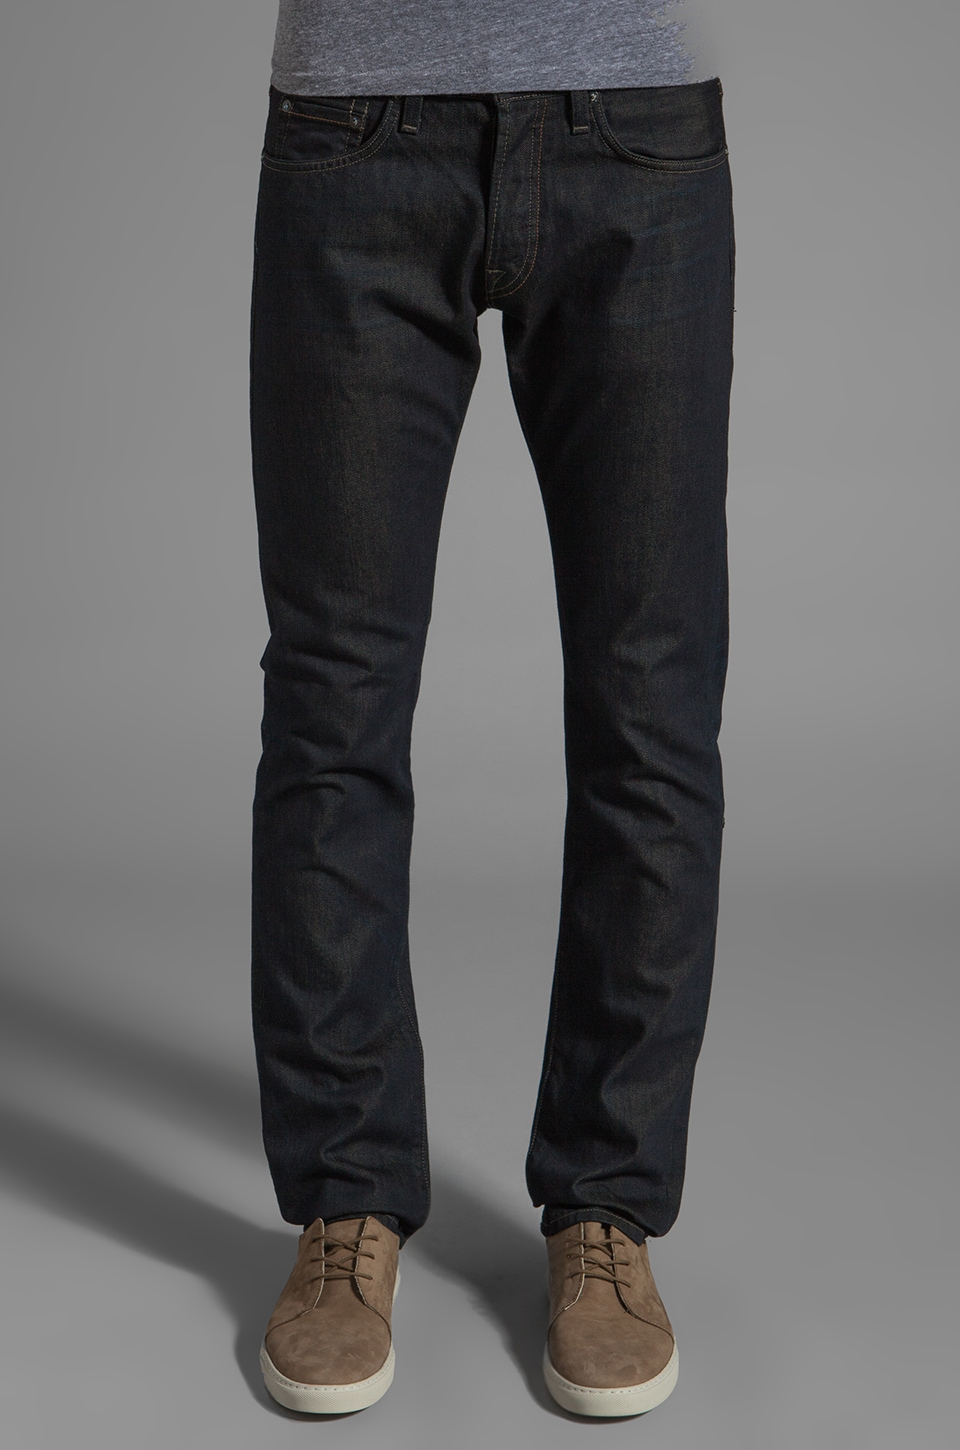 J Brand Tyler Jeans in Legend